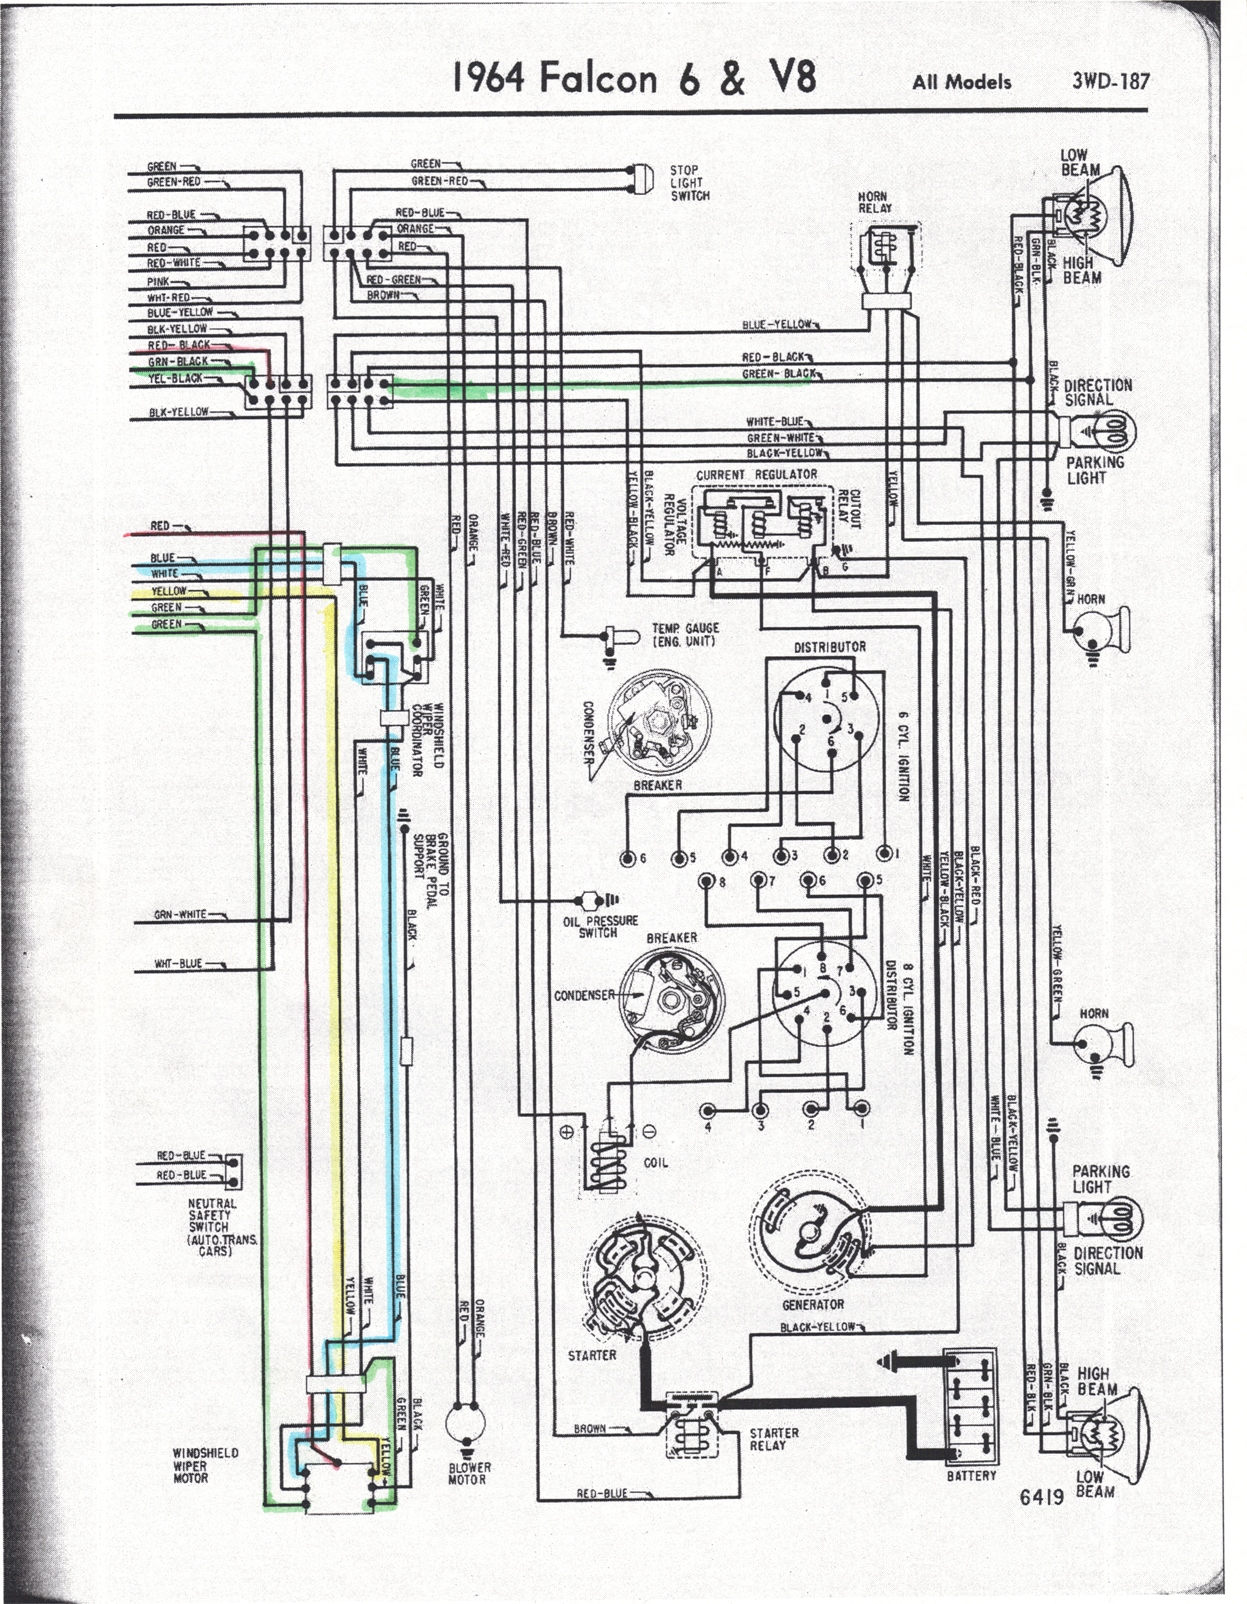 Adding Reverse Lights Wiring Diagram